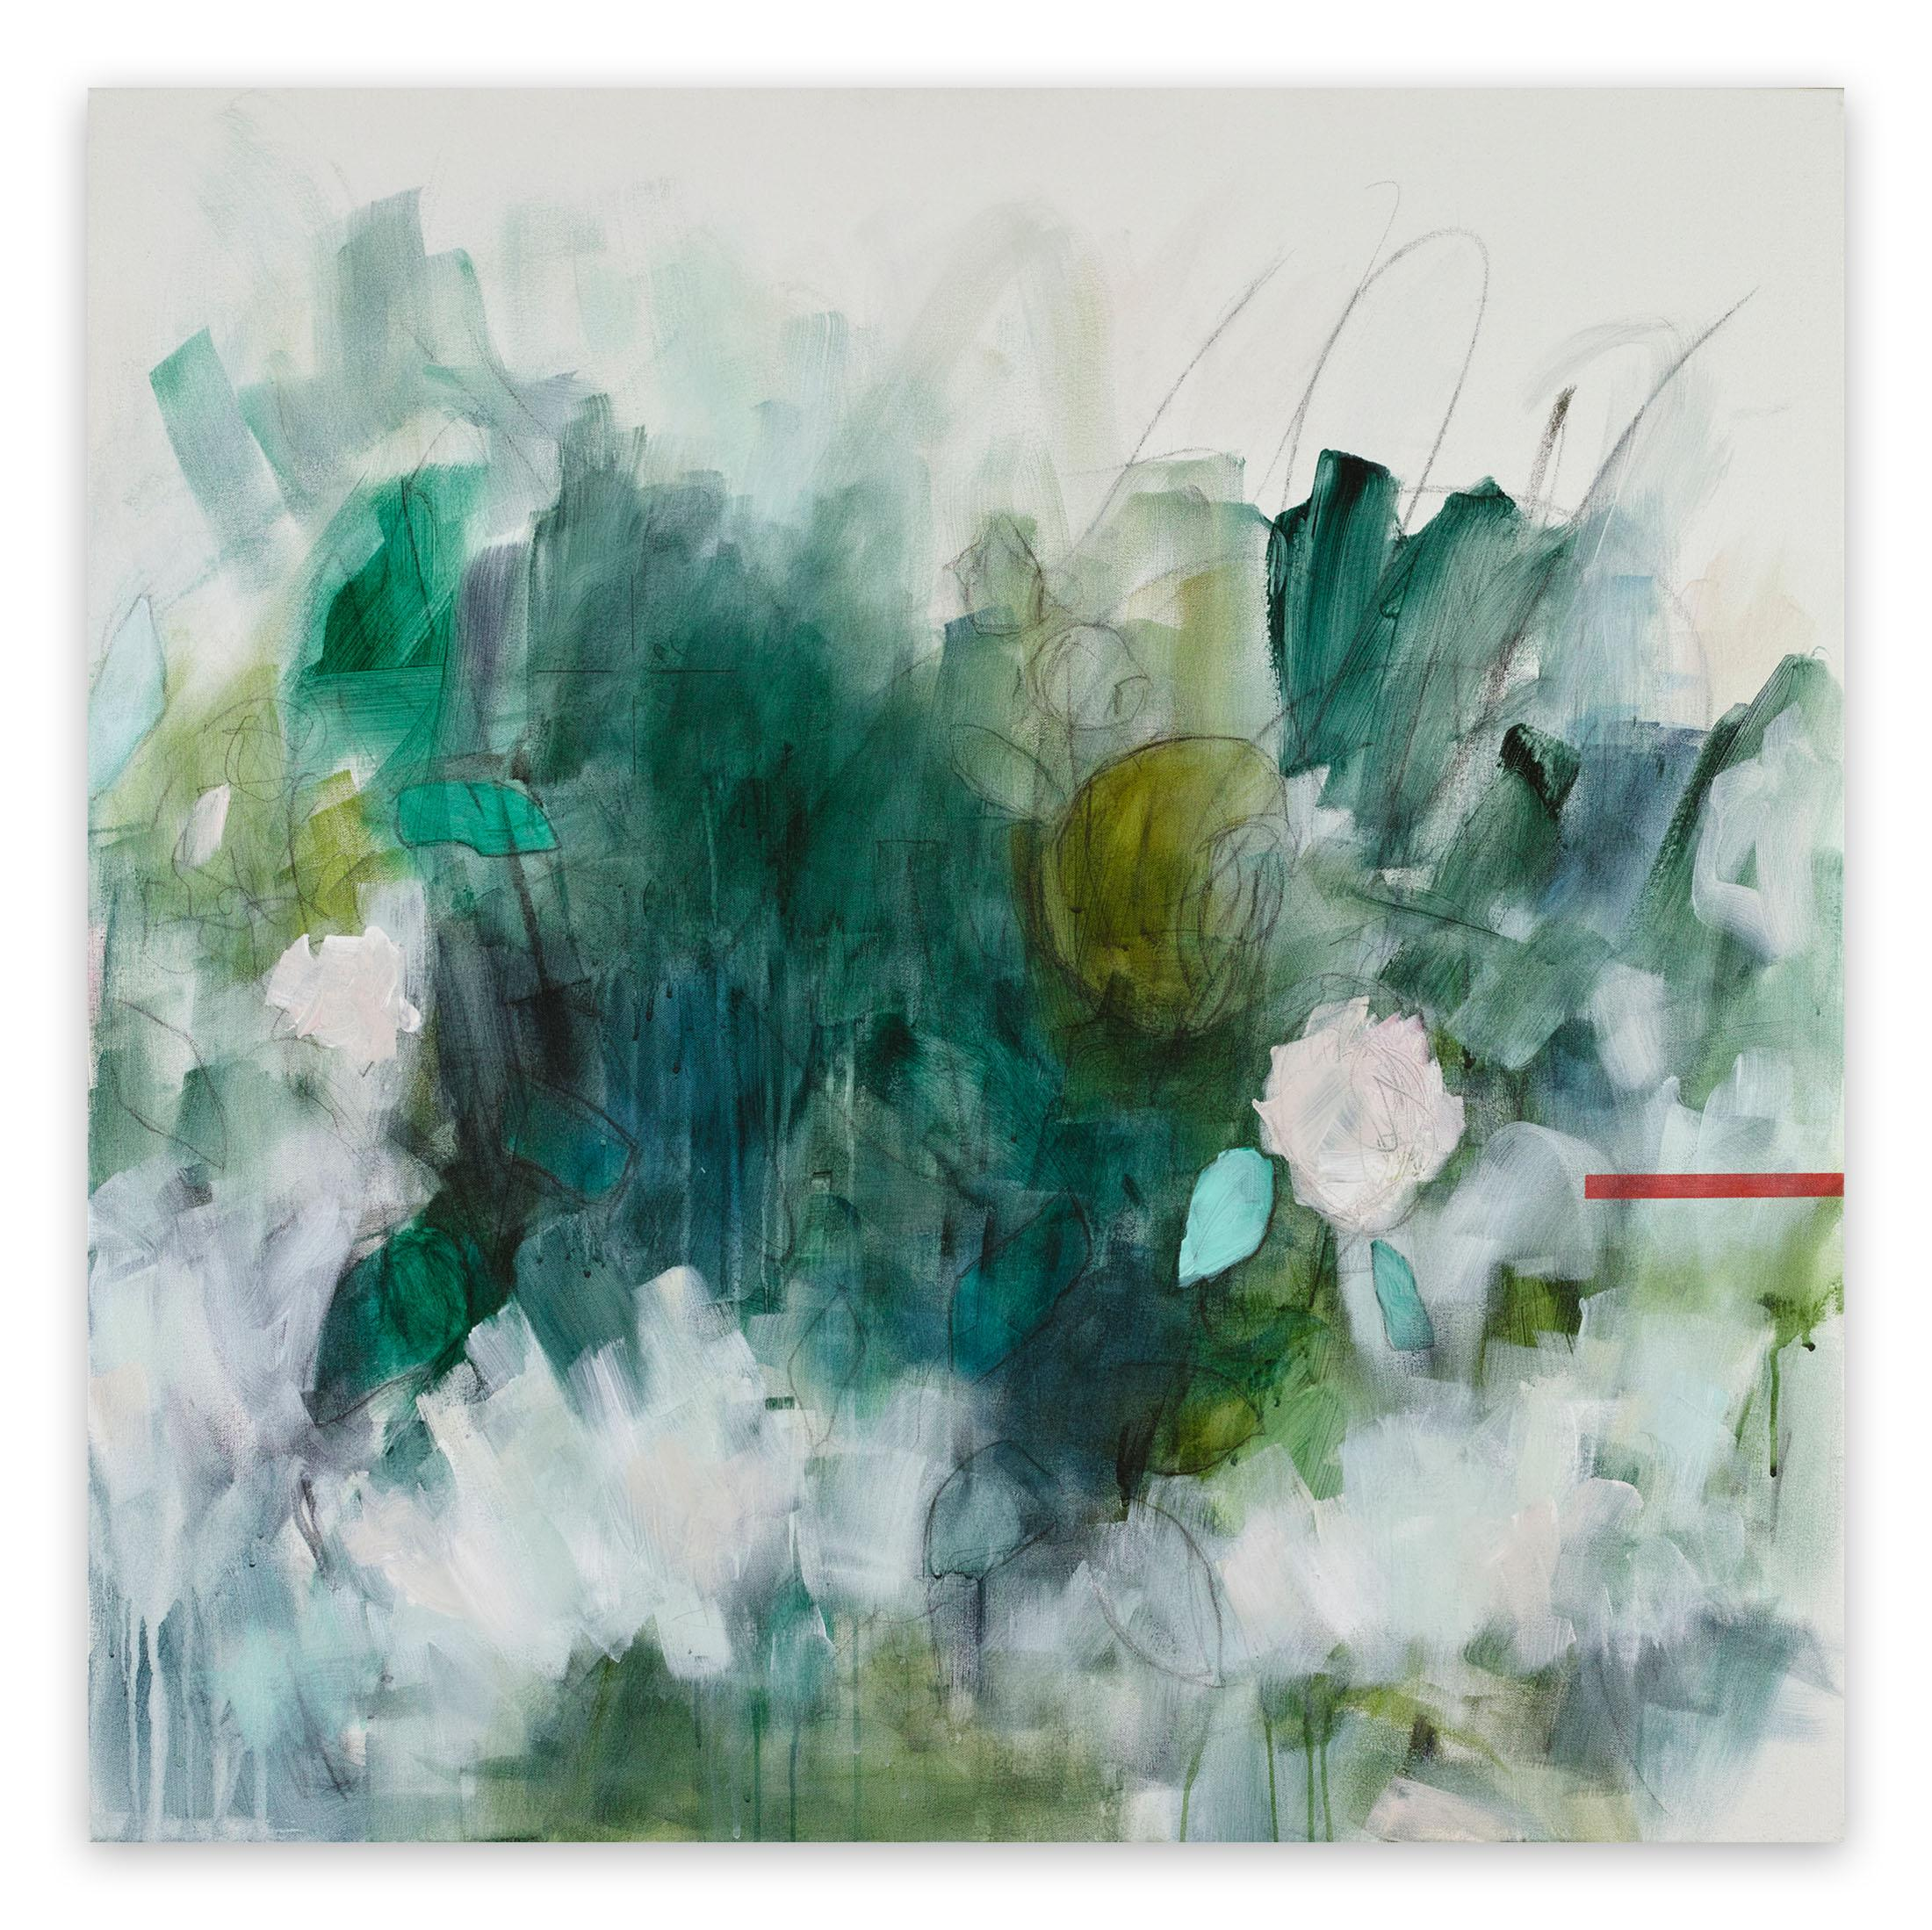 Glasshouse (Abstract painting)